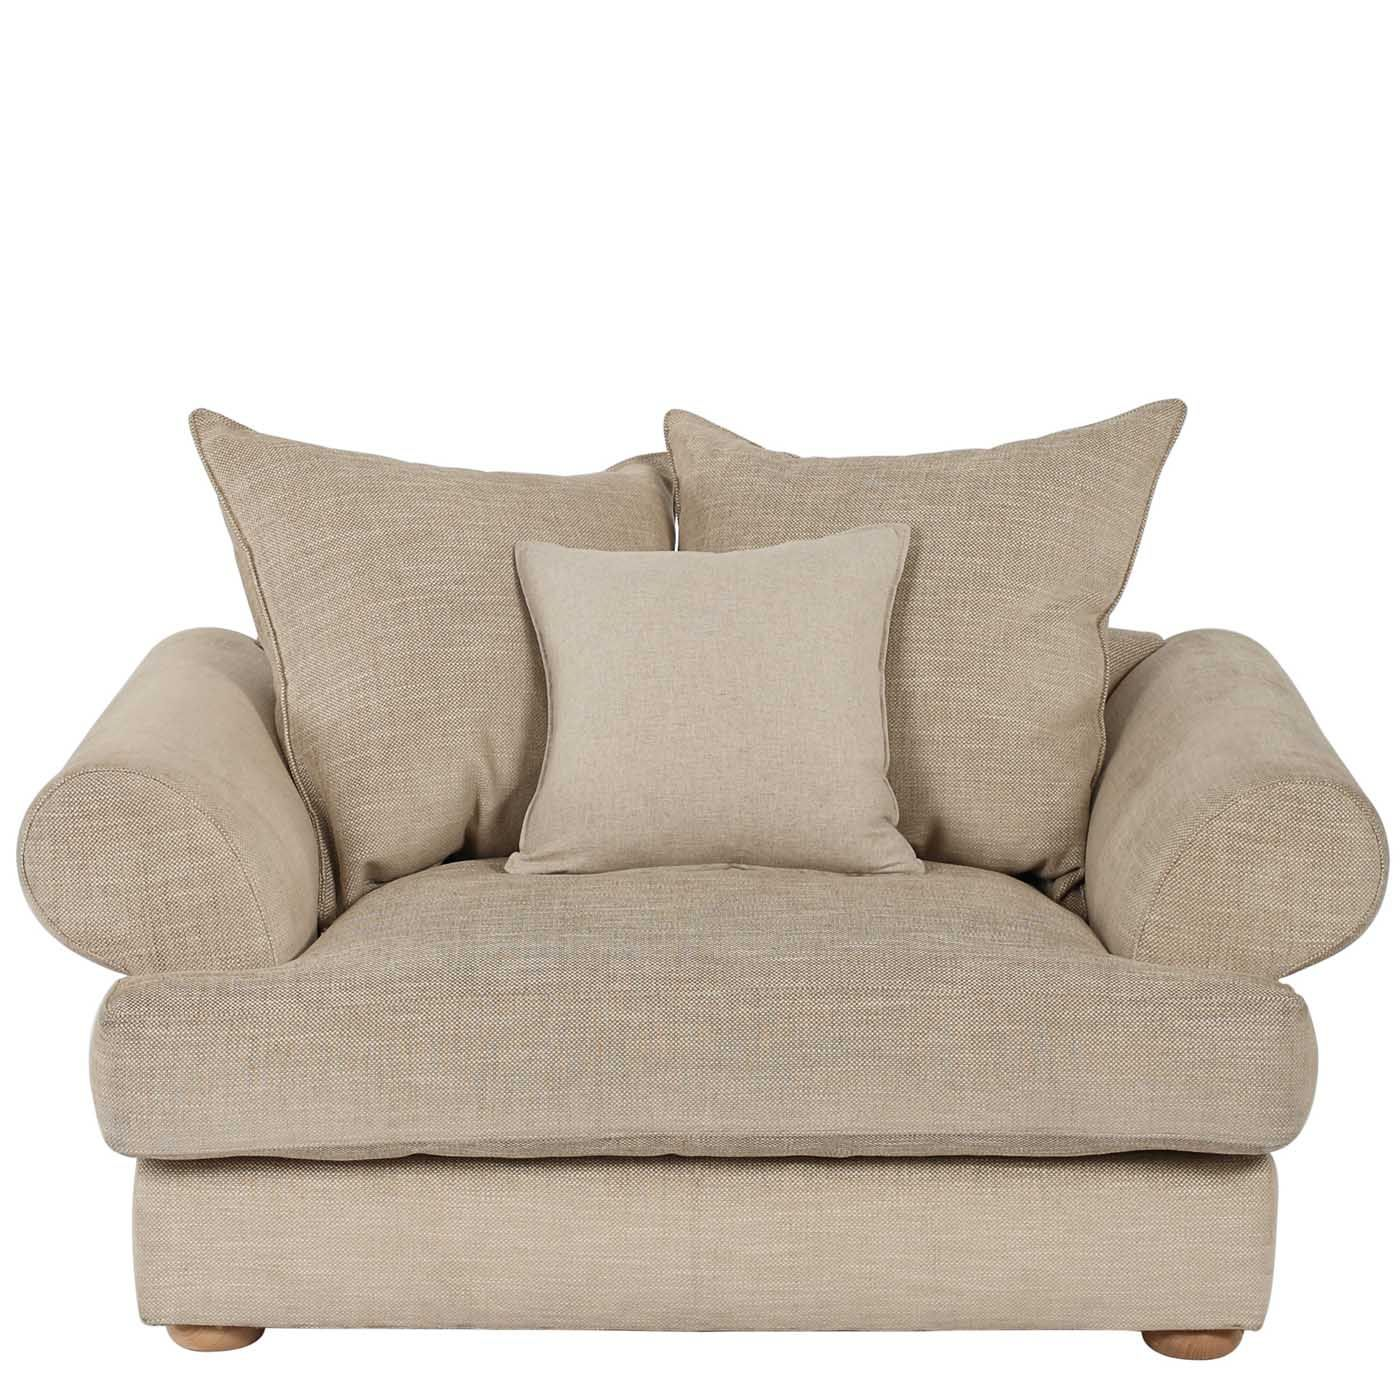 Over Stuffed Furniture   ... With Square Or T Cushion Leather Furniture Sofa  Beds